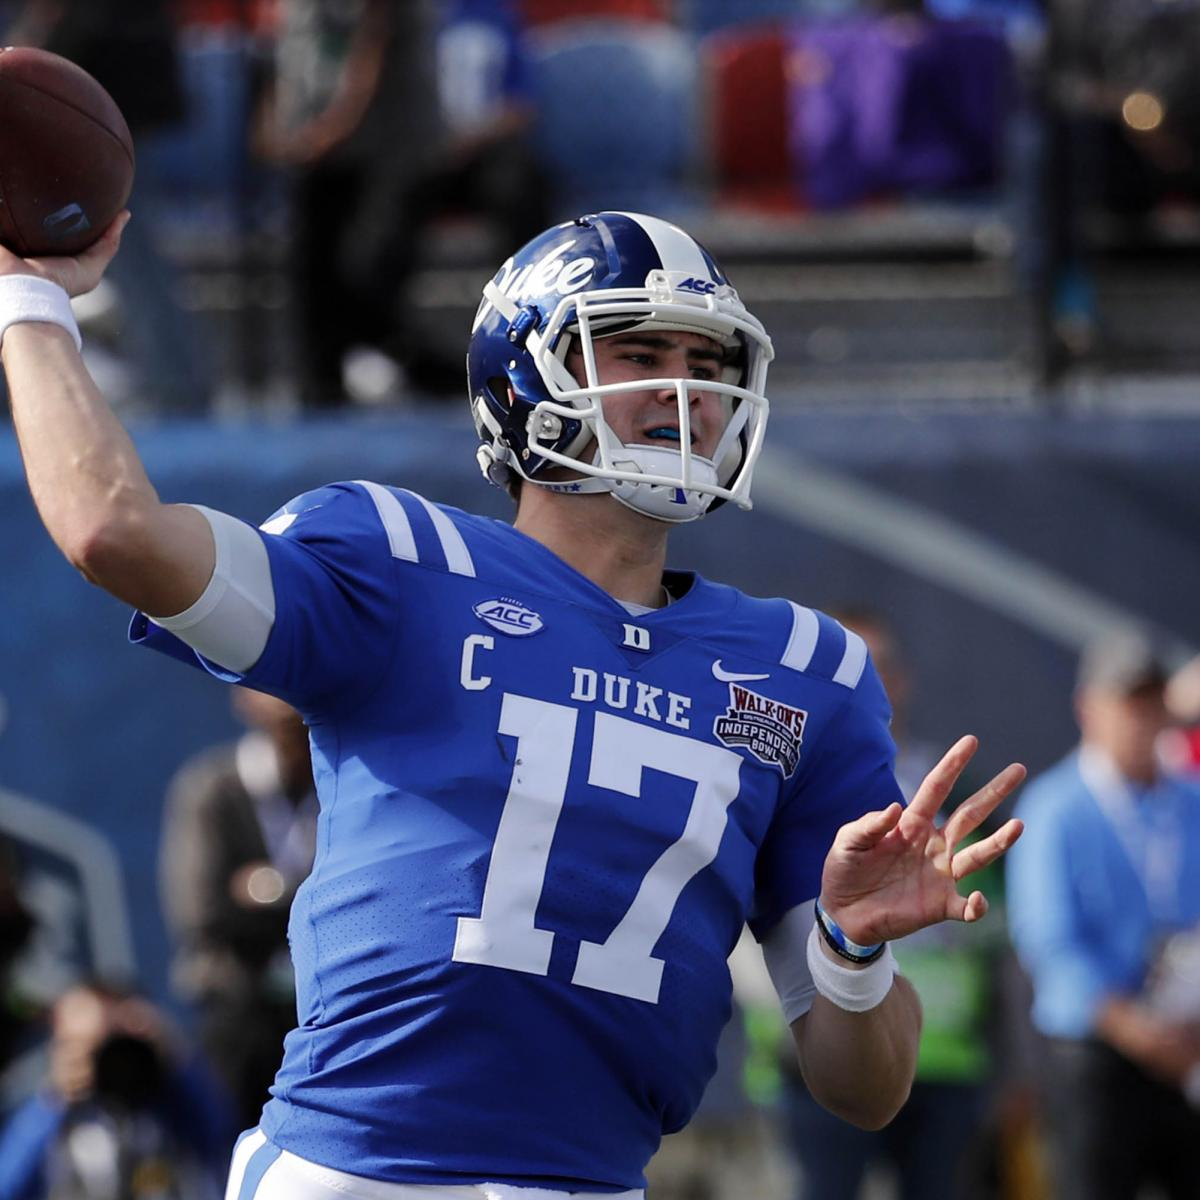 The second quarterback is officially off the board at the 2019 NFL draft. The New York Giants selected Duke's Daniel Jones with the No. 6 pick Thursday in an effort to solidify the quarterback position for years to come...